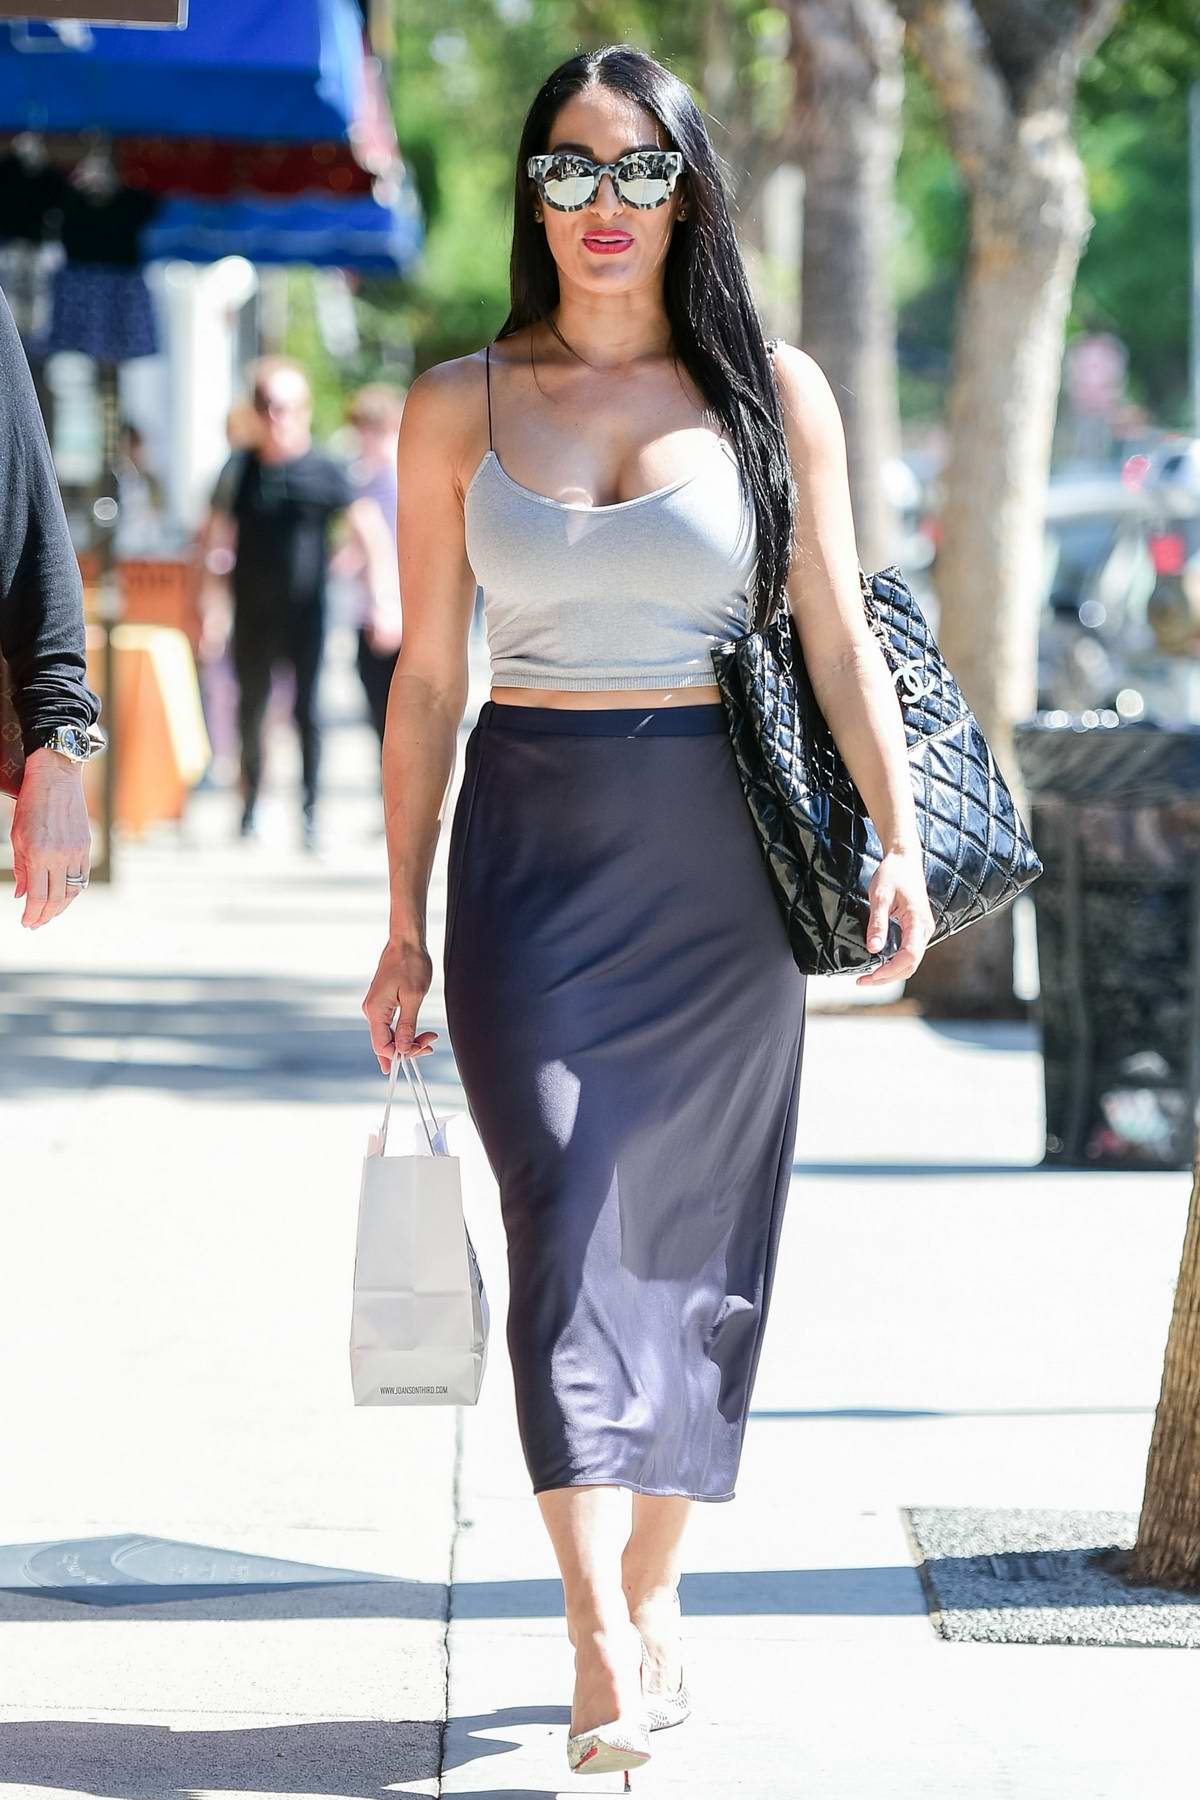 Nikki Bella rocks a grey crop top and blue silk skirt as she steps out for coffee with a friend in Los Angeles